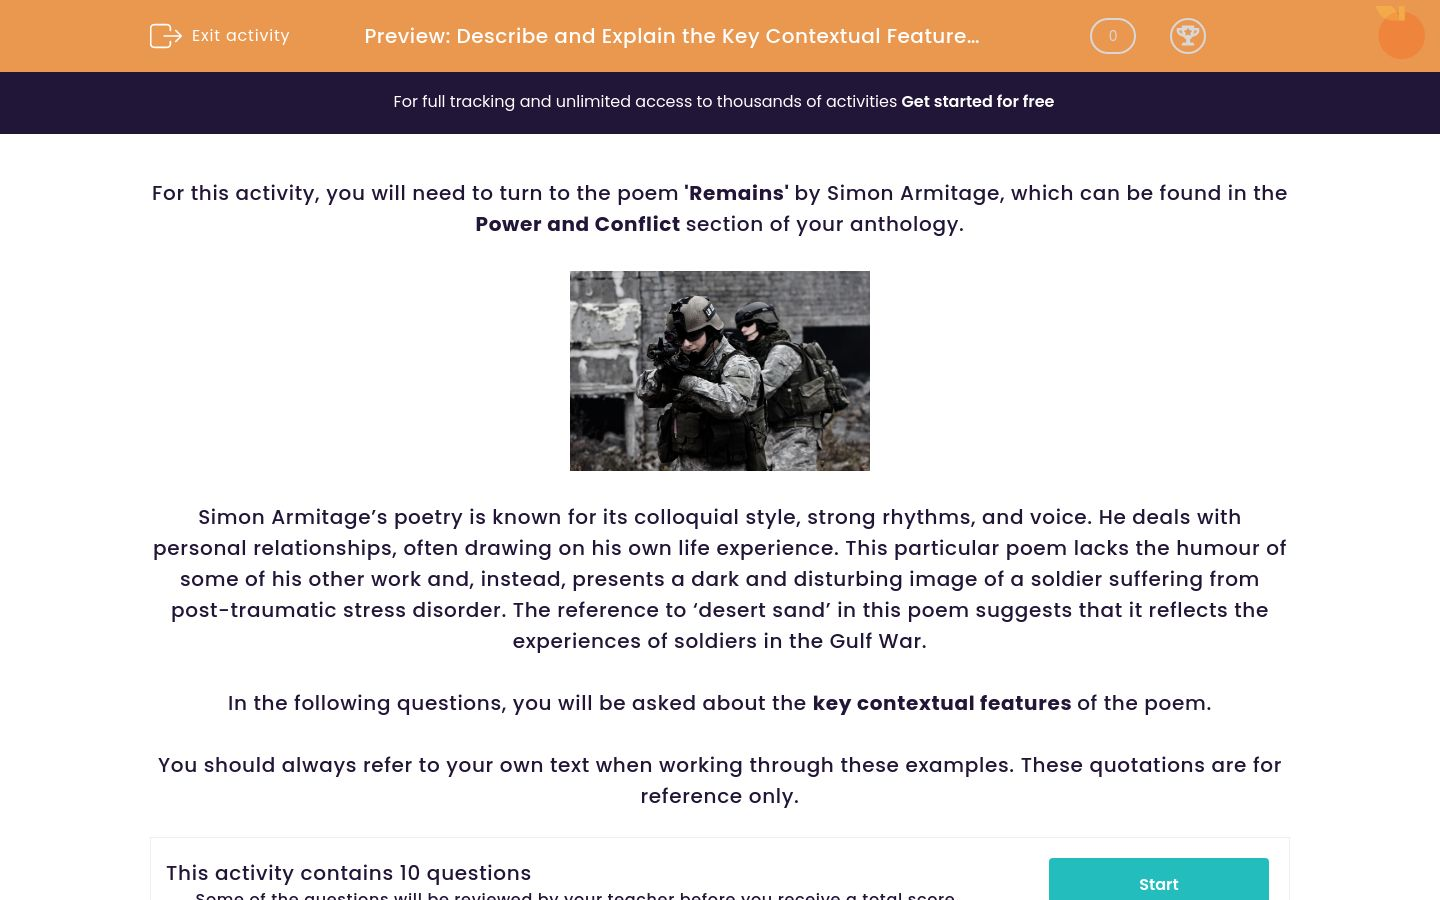 'Describe and Explain the Key Contextual Features of the Poem 'Remains' by Simon Armitage ' worksheet